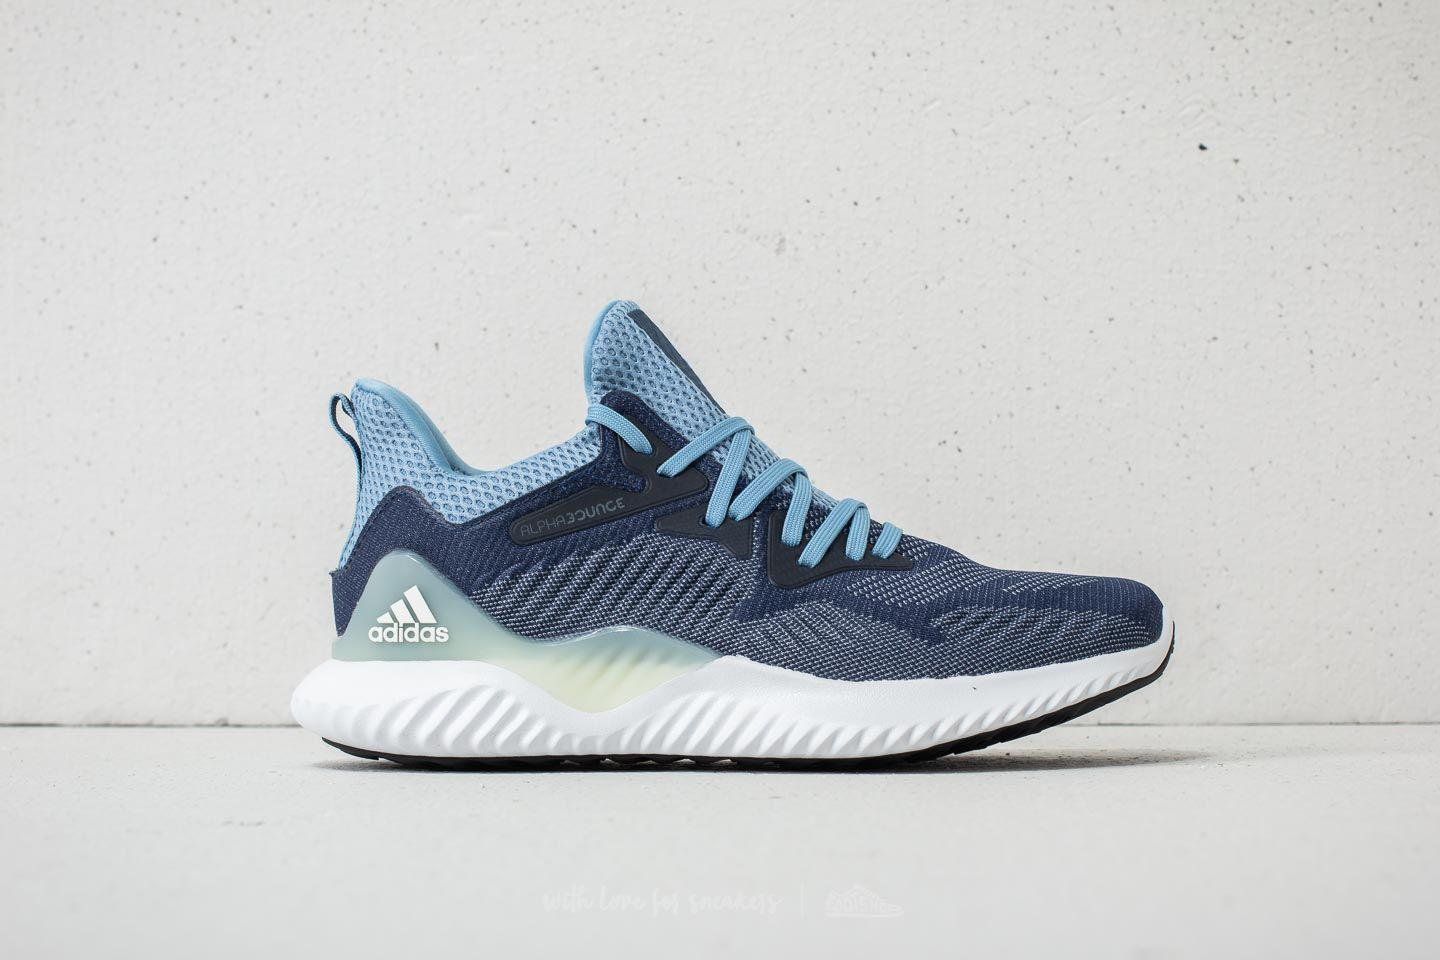 official photos 61bea f2ac4 Lyst - adidas Originals Adidas Alphabounce Beyond W Noble In